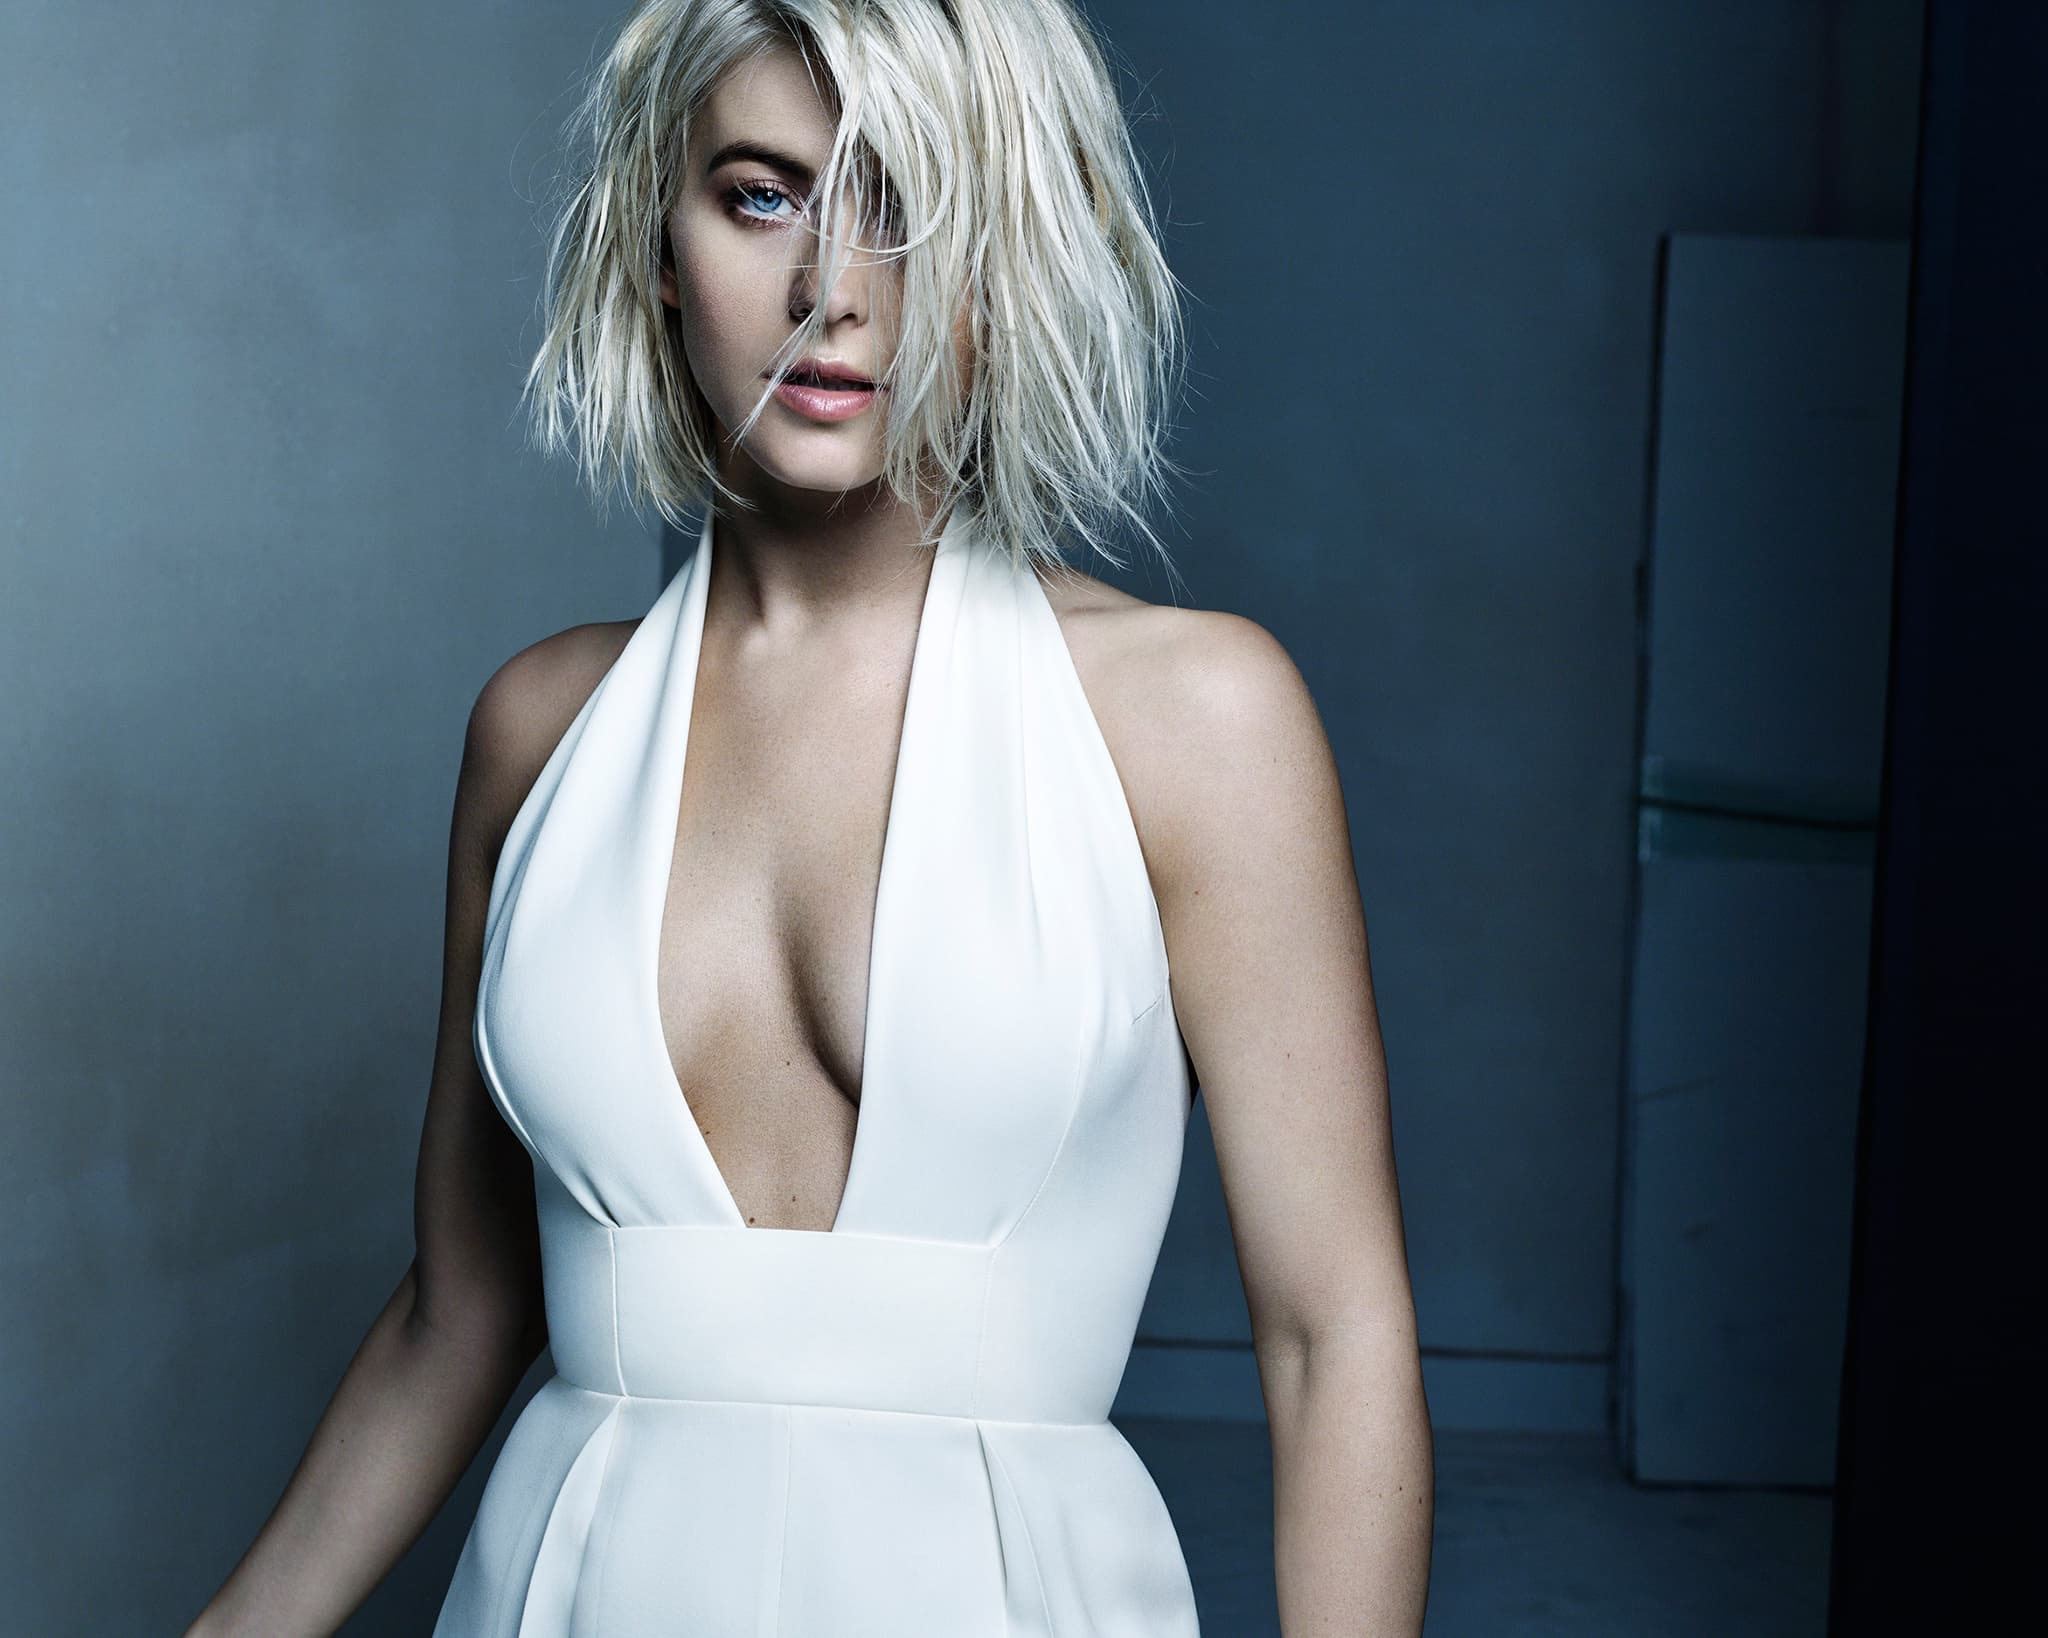 julianne hough wallpapers, 23+ high quality images